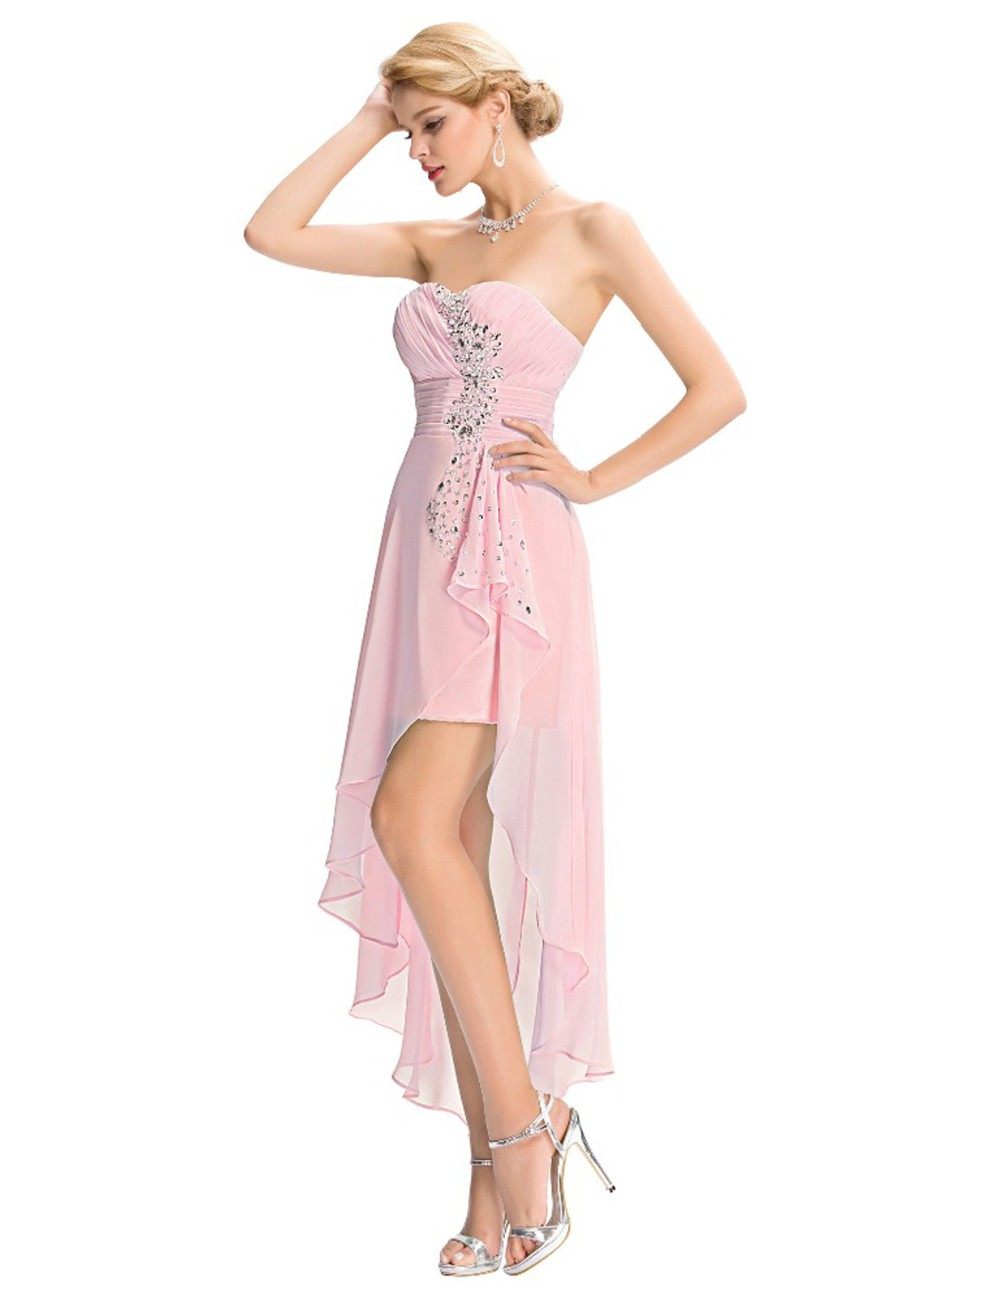 Robe De Bal  Buy or Sell Clothing in Gatineau  Kijiji Classifieds